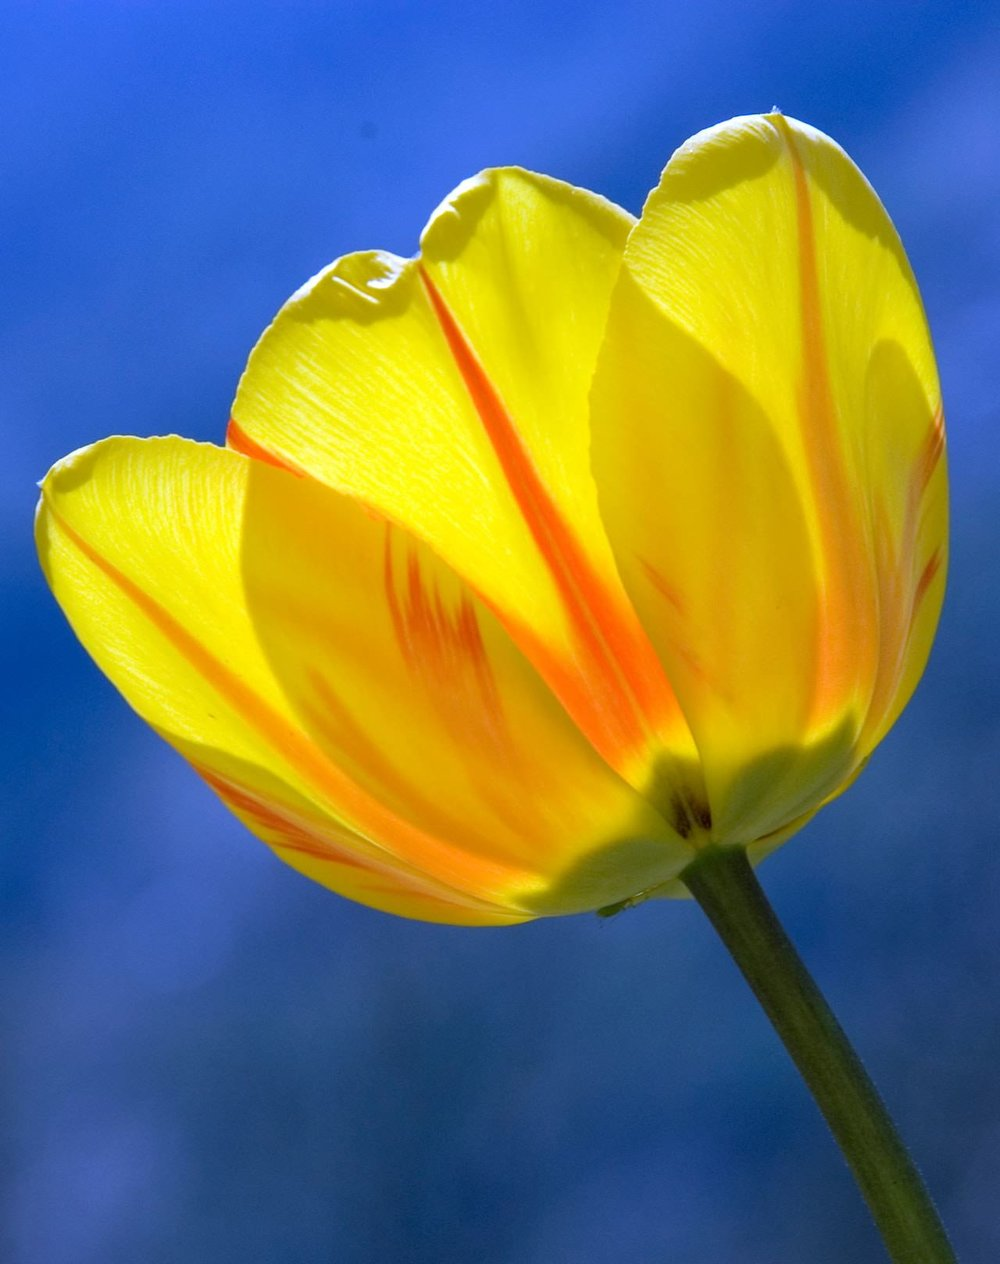 tulip-yellow-spring-flowers-60115 copy.jpeg